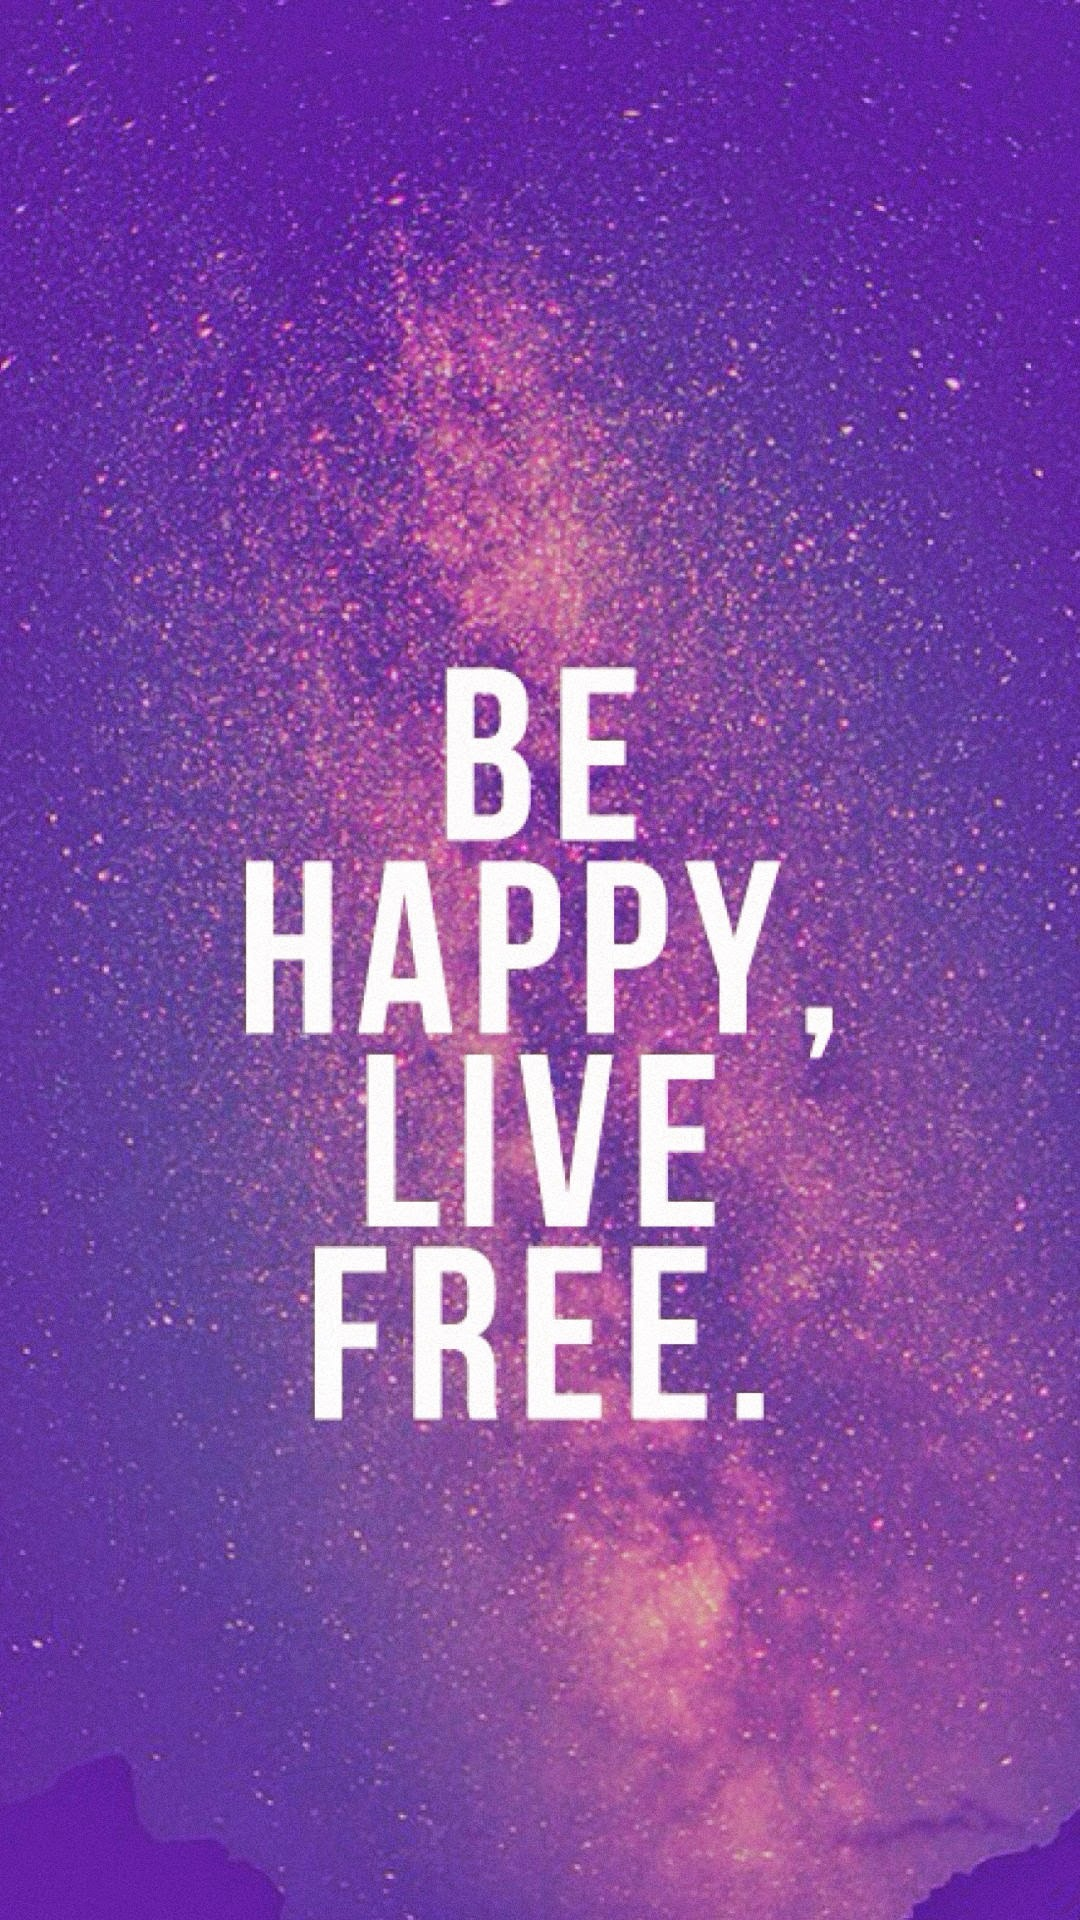 Be-Happy-Live-Free-Tap-to-see-New-Beginning-Quotes-For-Your-iPhone-This-New-Year-Fresh-wallpaper-wp3603042